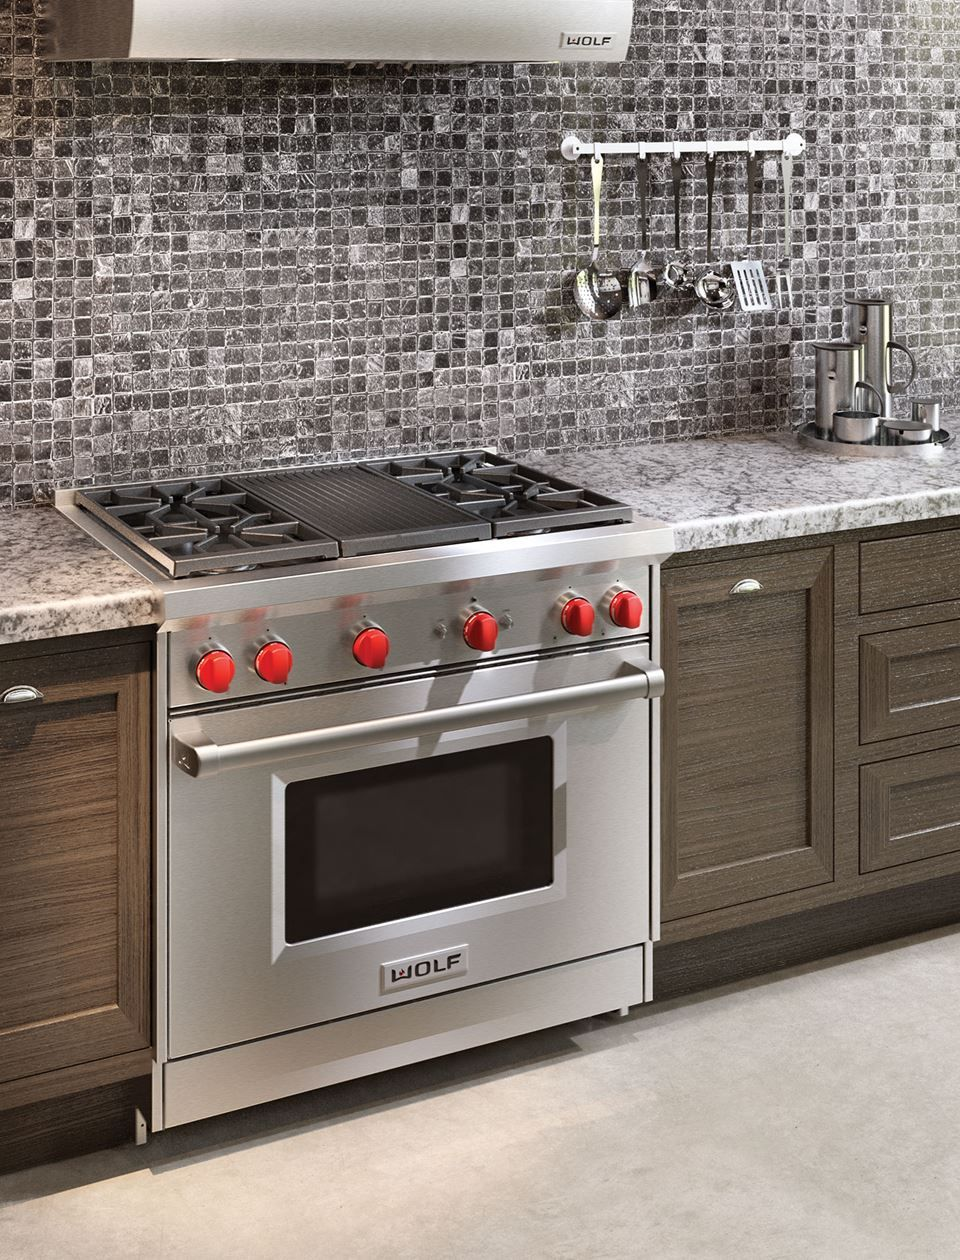 36 Gas Range 4 Burners And Infrared Charbroiler Dream